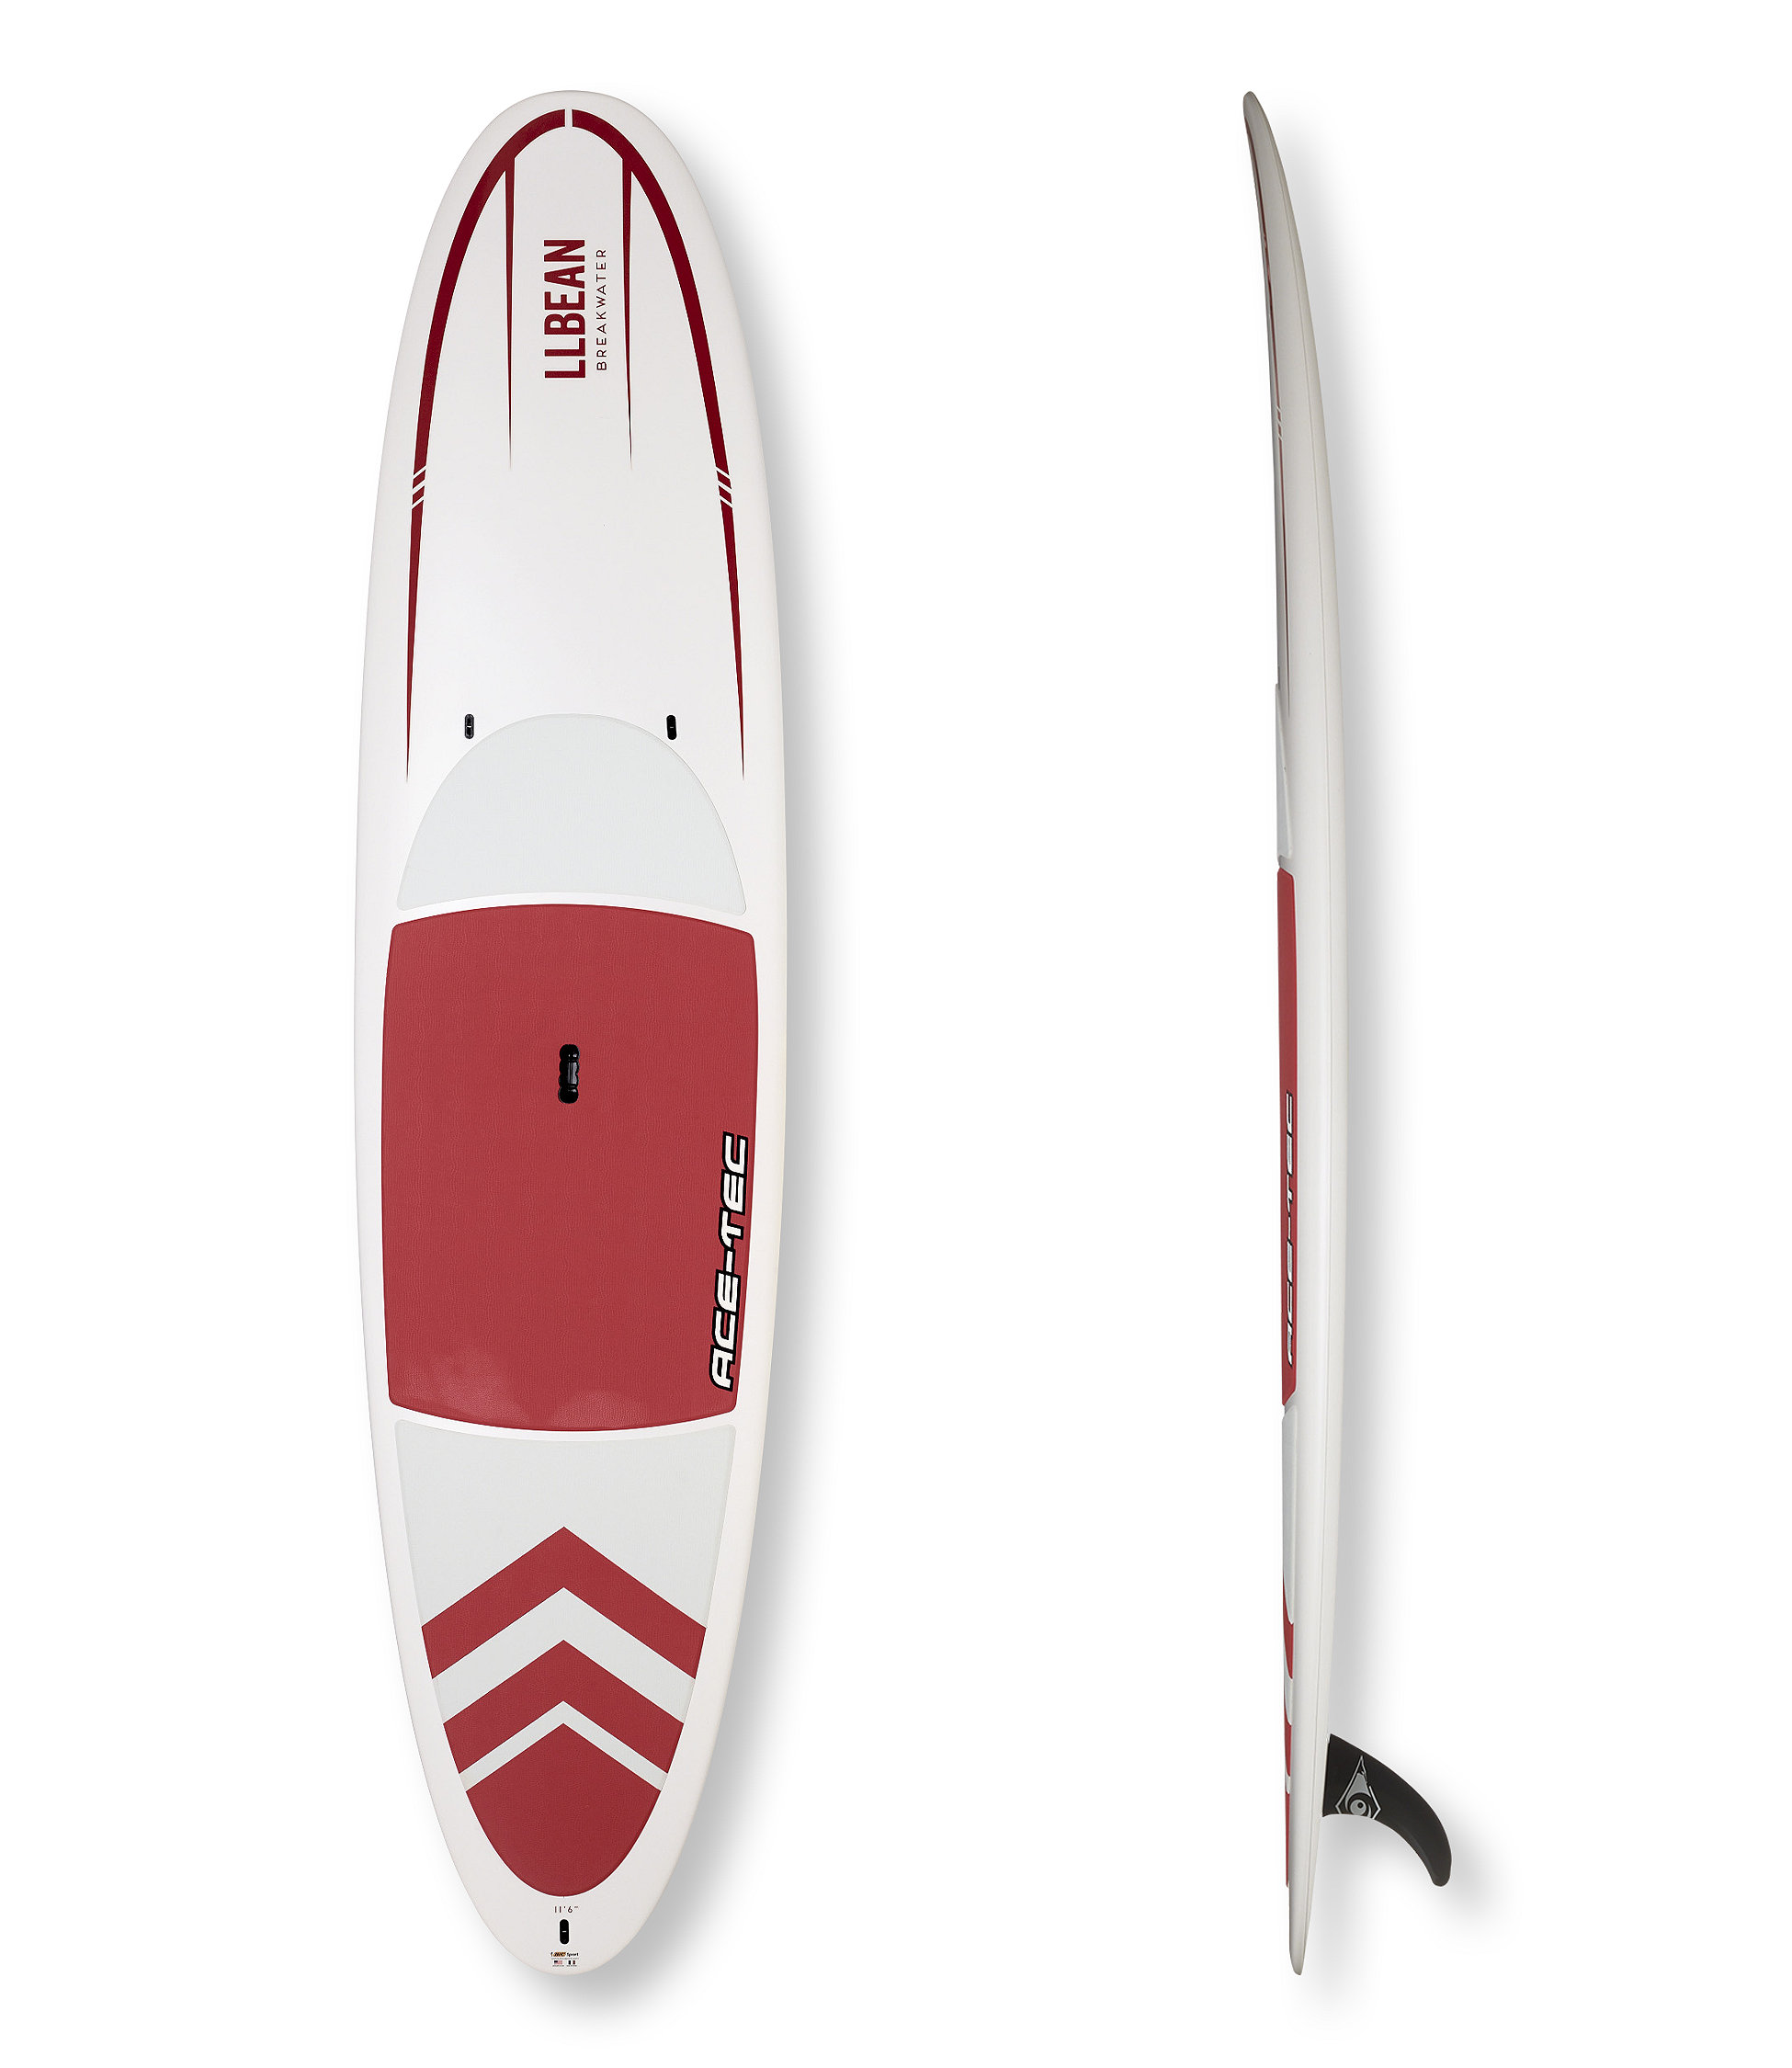 L.L.Bean Breakwater Stand Up Paddle Board, 11'6